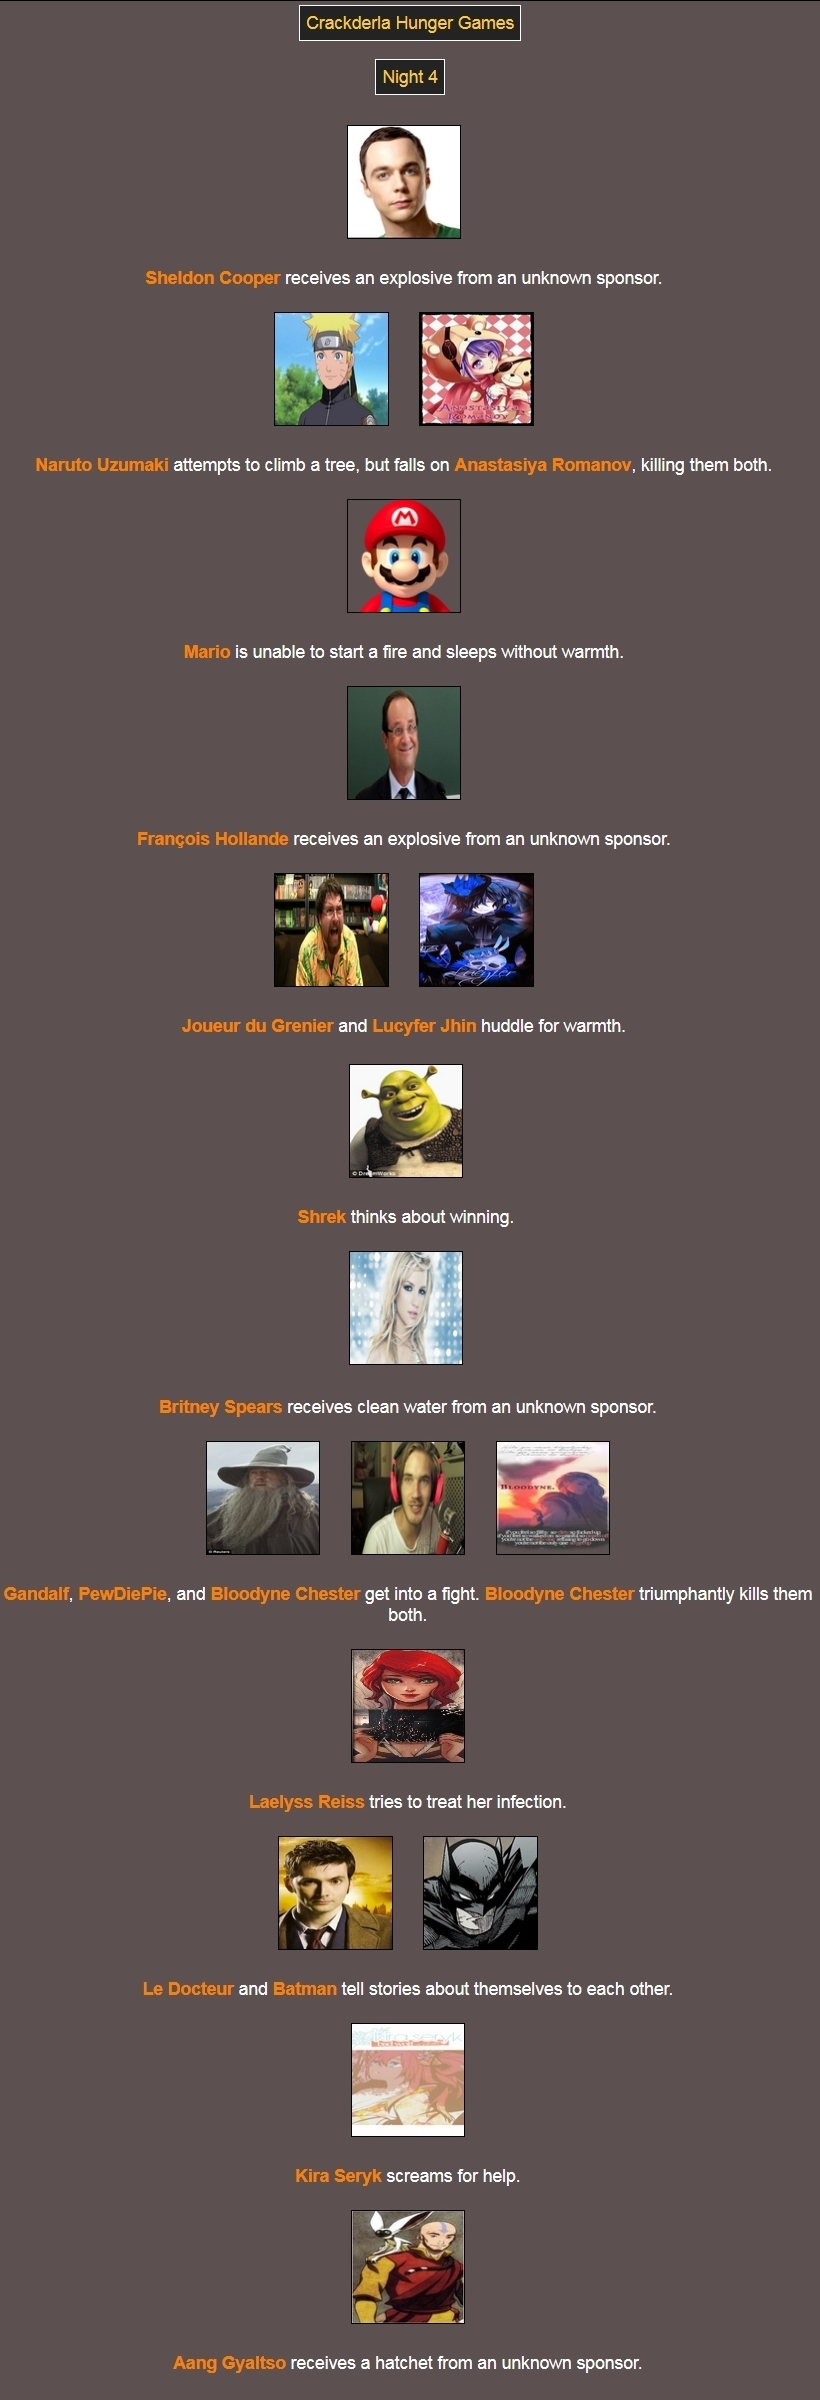 [Crackderla N°1] Hunger Games - Page 7 494253Night4